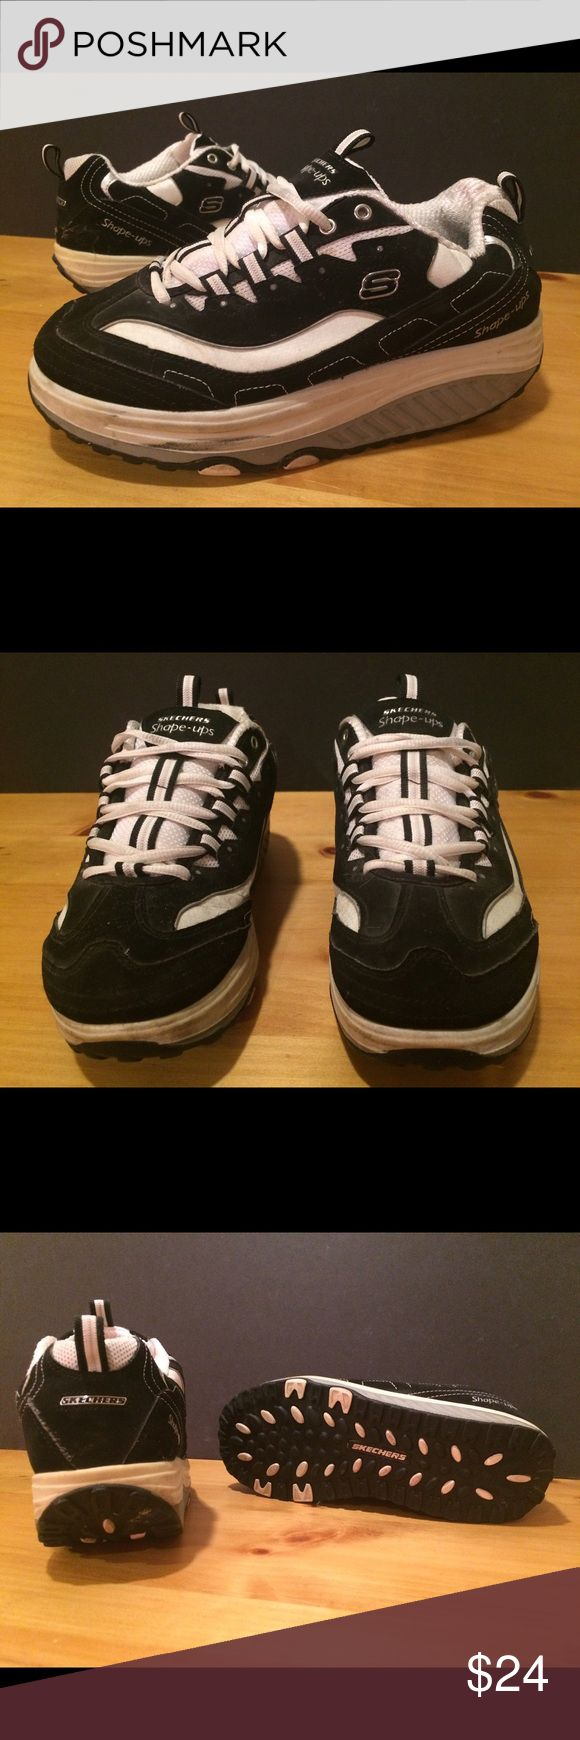 Women's Size 7.5 Black & White Skechers Shape-Ups Women's size 7.5 black & white Skechers Shape-Ups shoes. See photos and please message with any questions! :) Skechers Shoes Sneakers